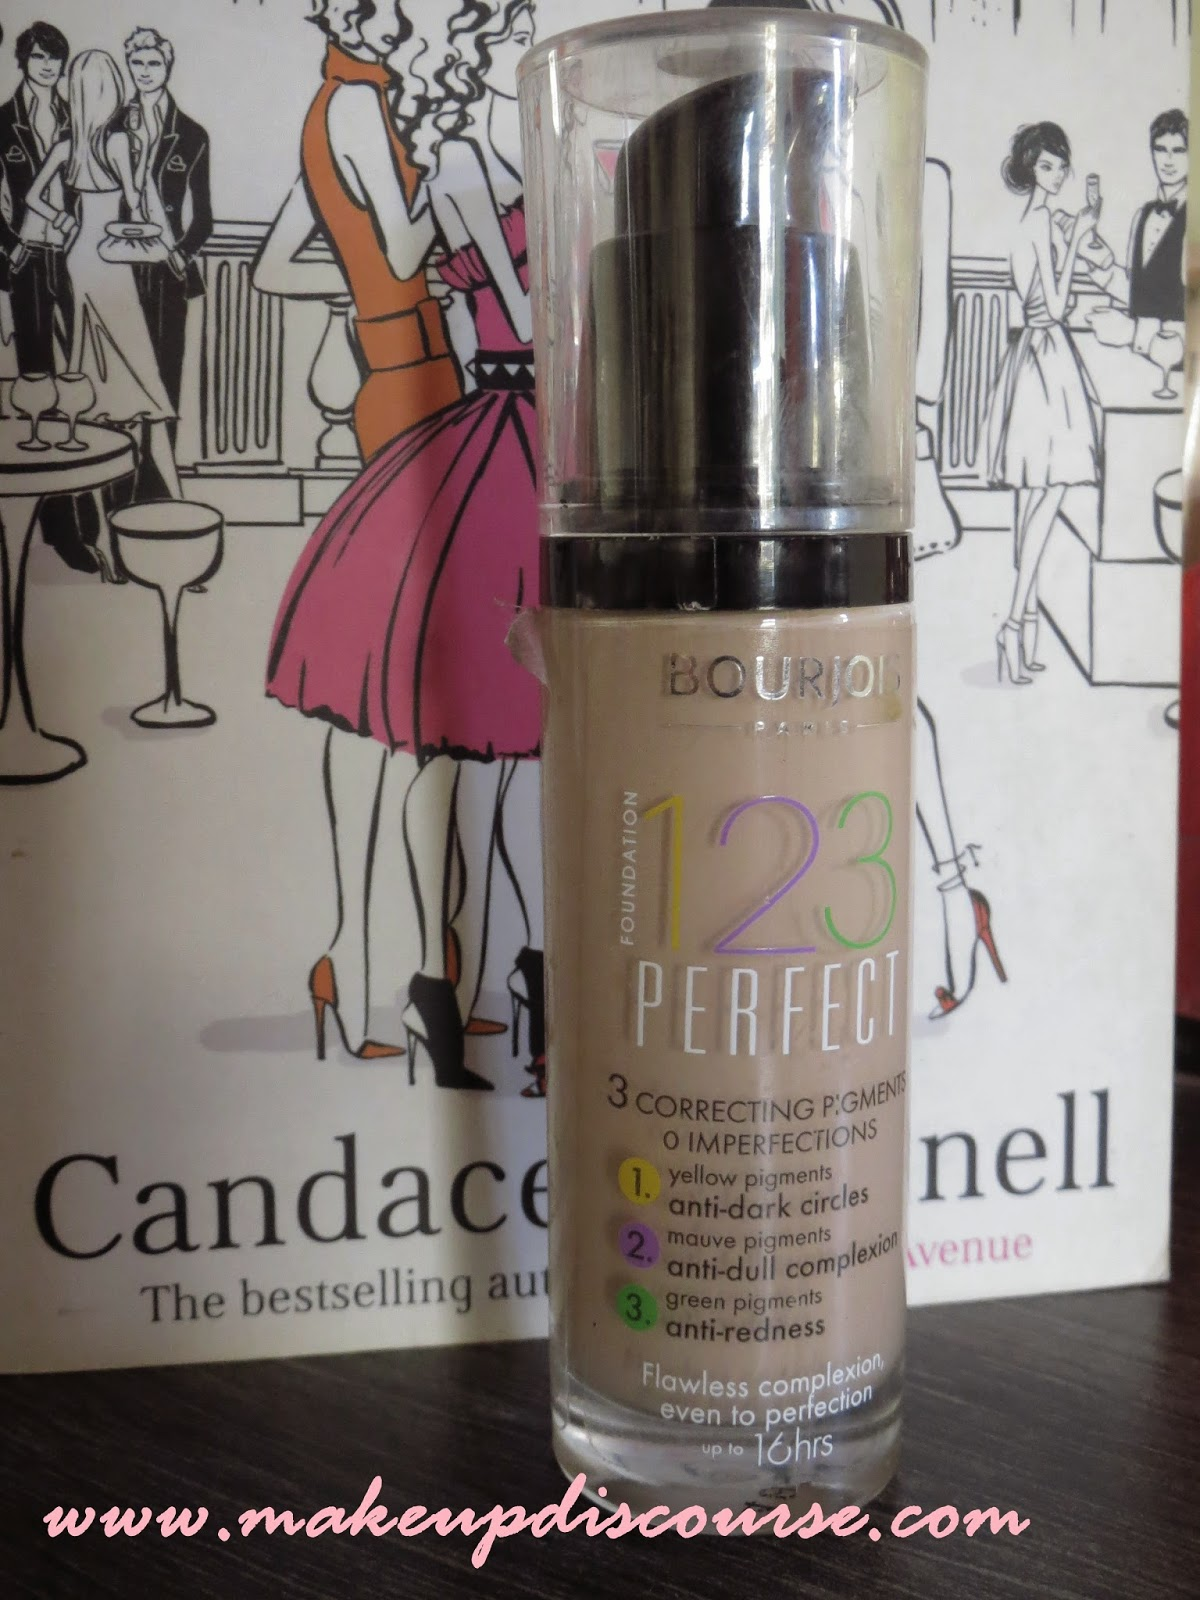 Bourjois 123 Perfect Foundation Review: Swatch and FOTD in India